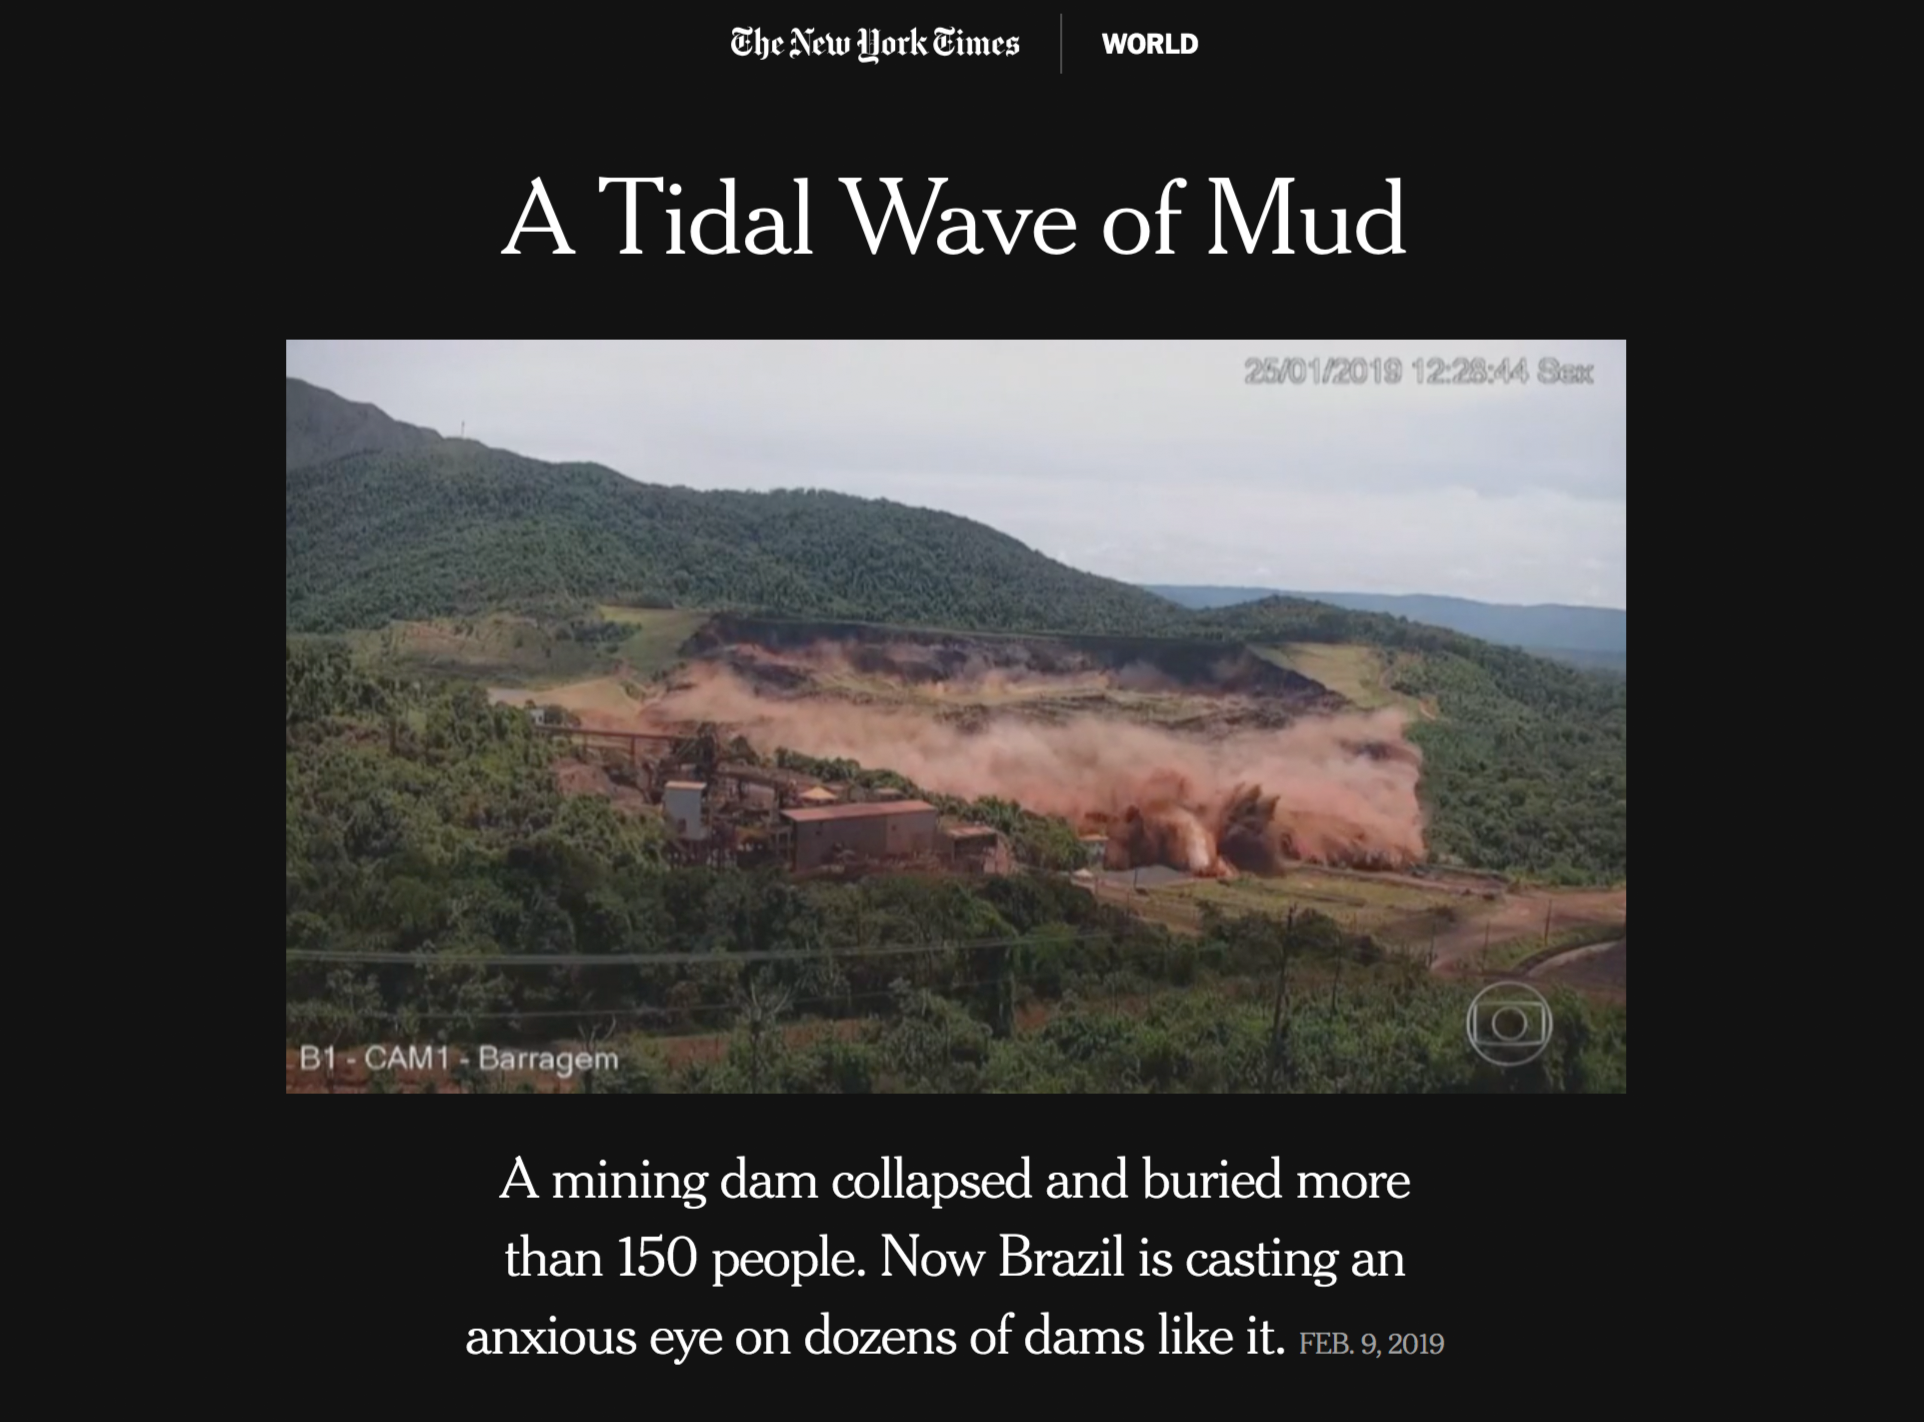 https://www.nytimes.com/interactive/2019/02/09/world/americas/brazil-dam-collapse.html